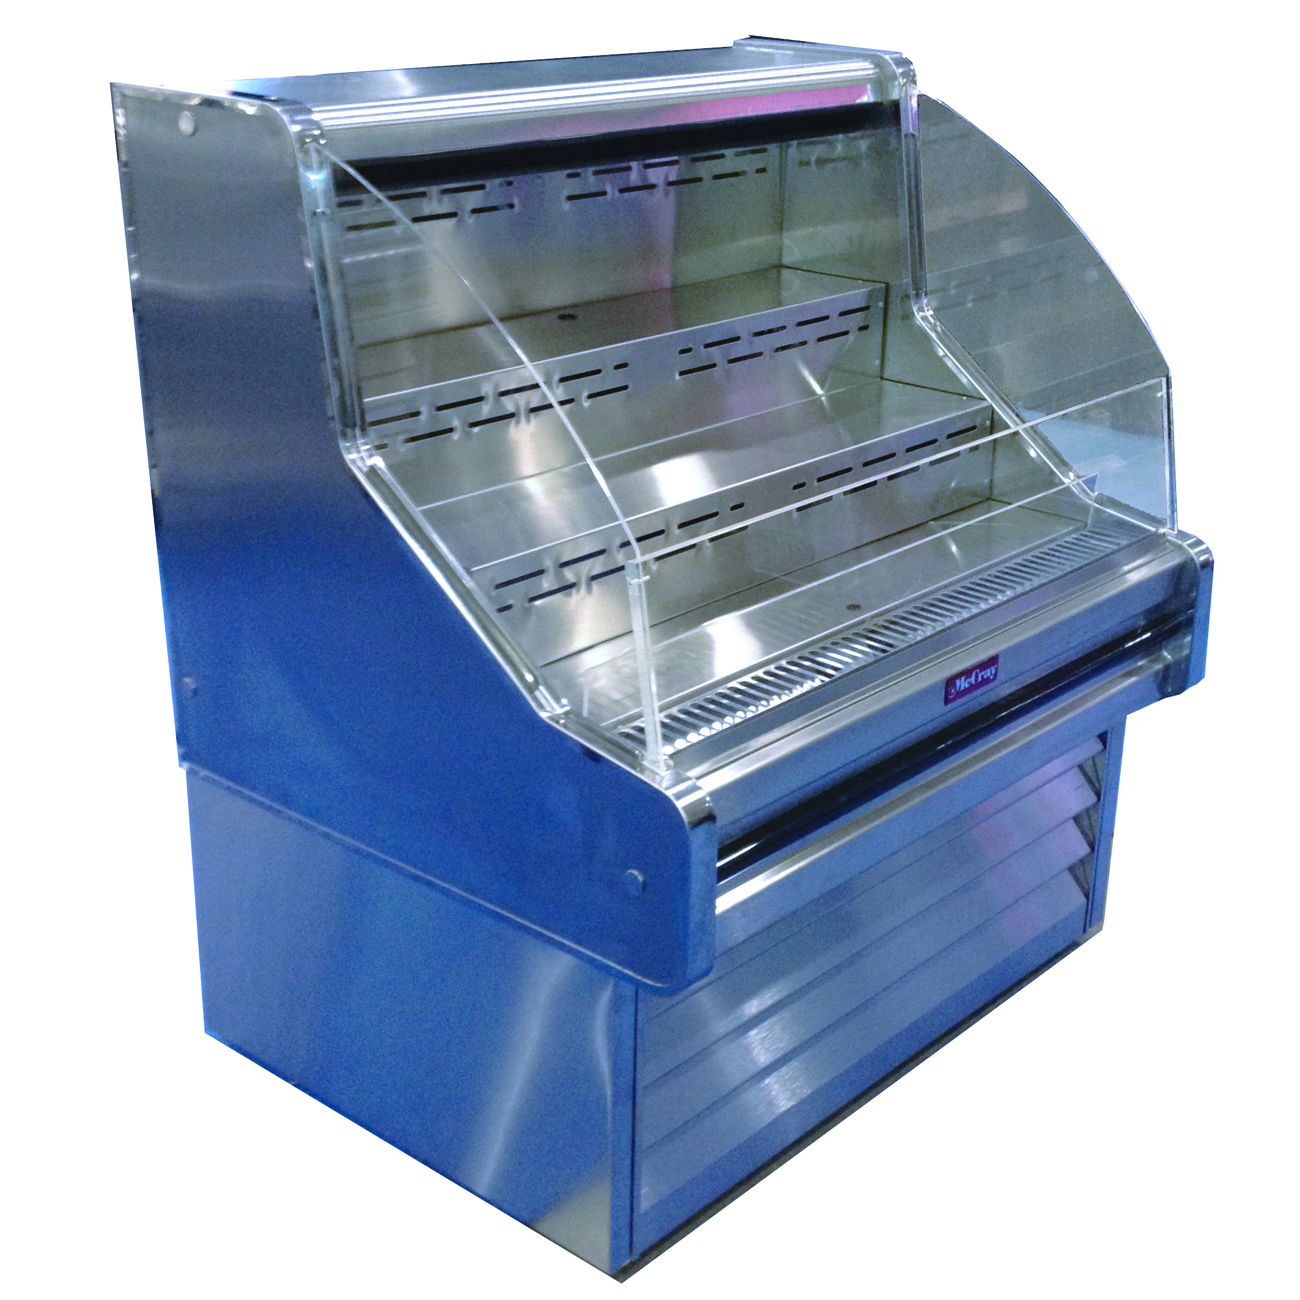 Howard-McCray R-OS30E-3C-S-LED merchandiser, open refrigerated display